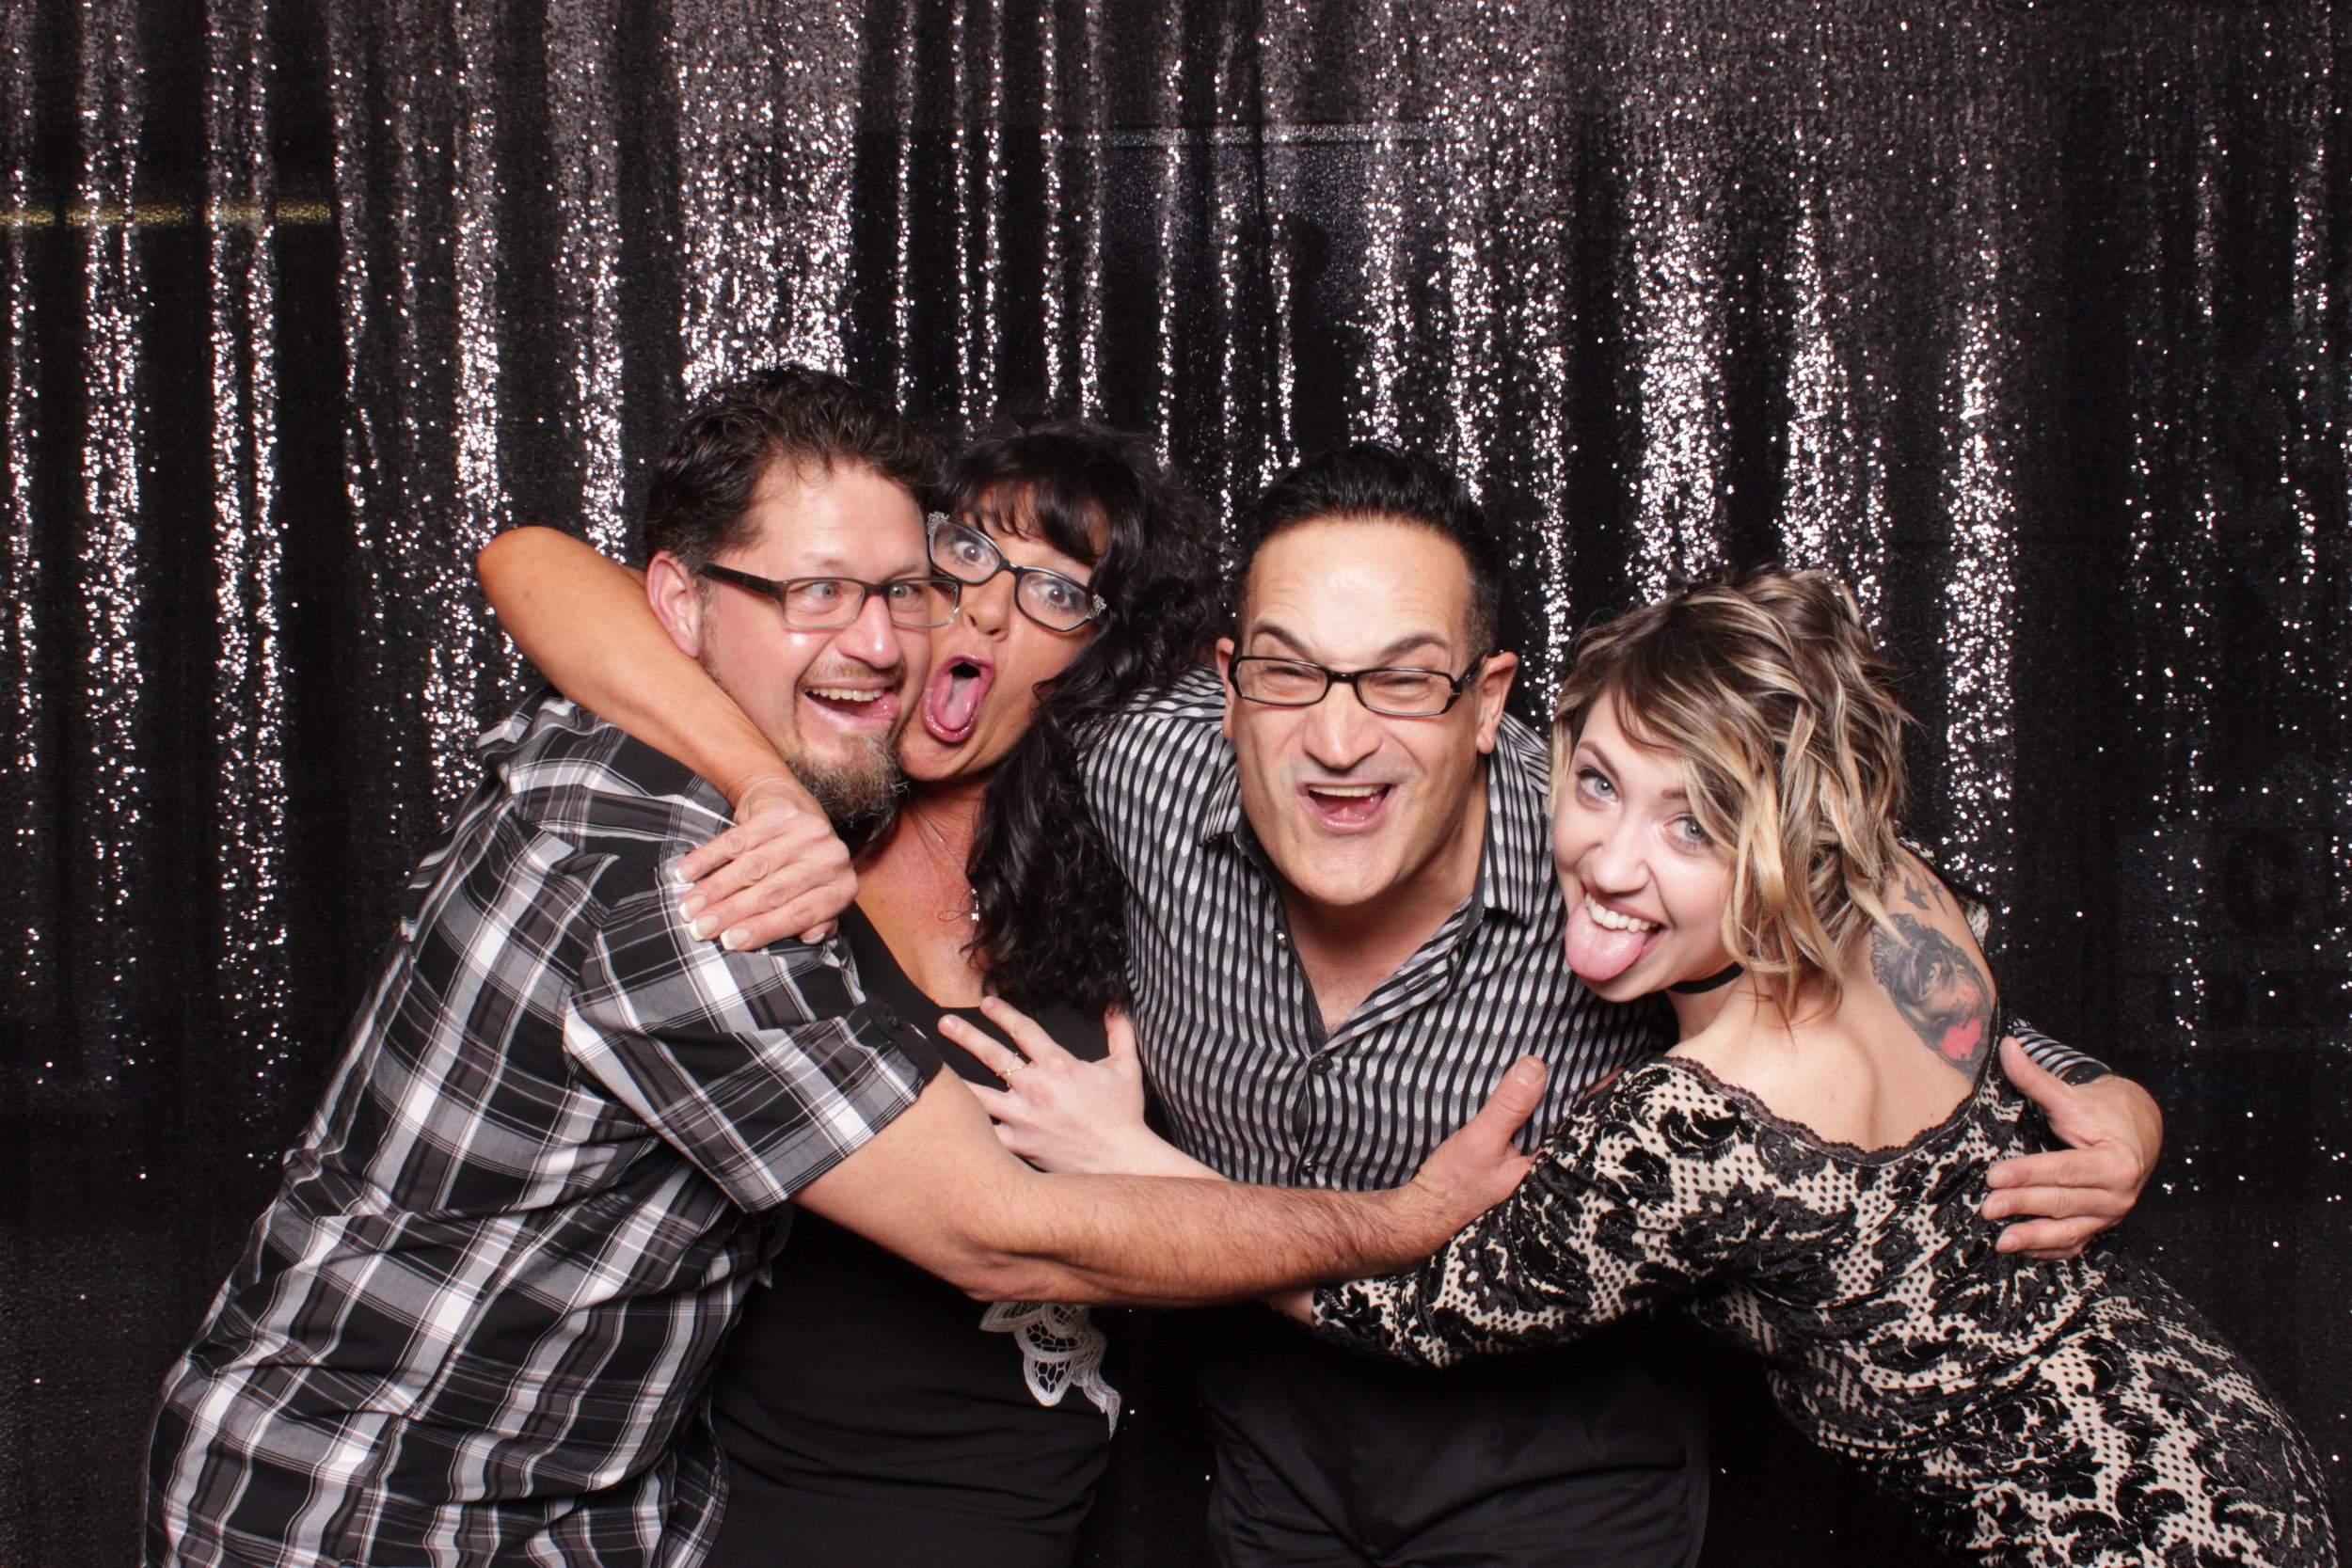 chico-trebooth-open-air-photo-booth-rental.jpg